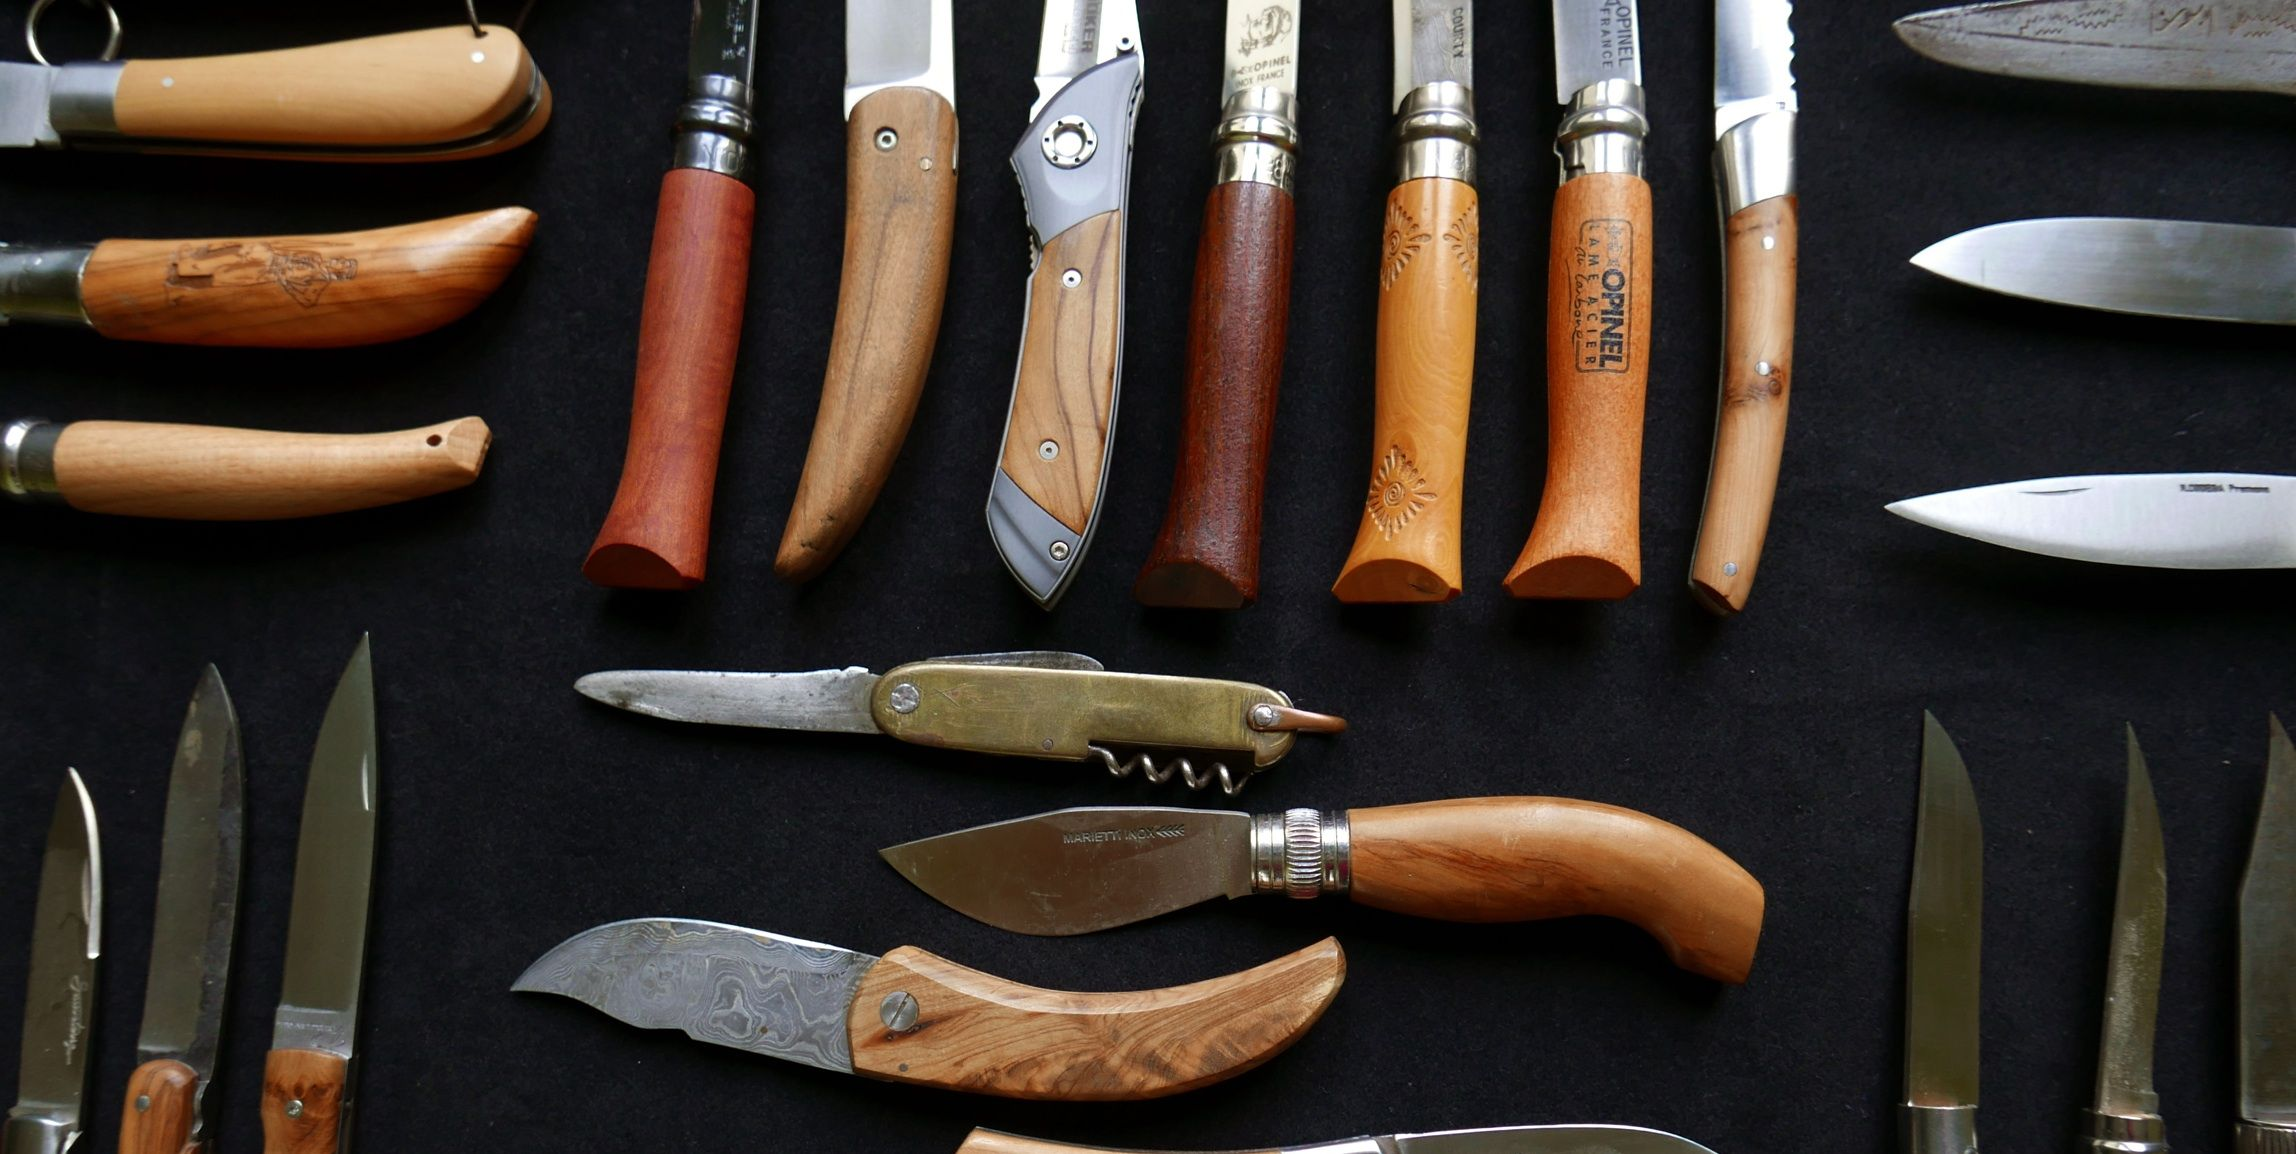 assortment of knives